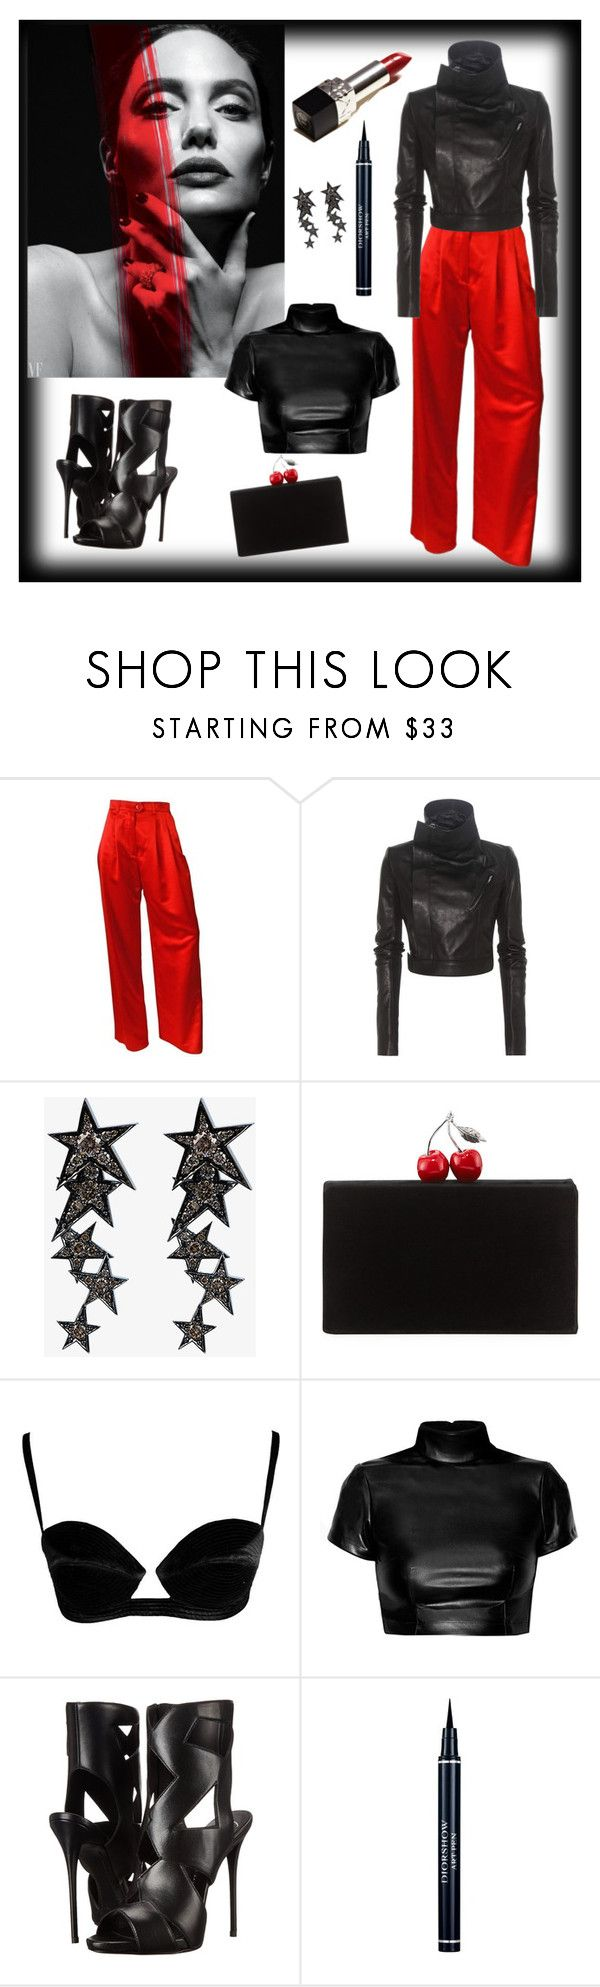 """No tomorrow"" by fpb173 ❤ liked on Polyvore featuring ESCADA, Rick Owens, Luis Miguel Howard, Edie Parker, Giuseppe Zanotti and Christian Dior"